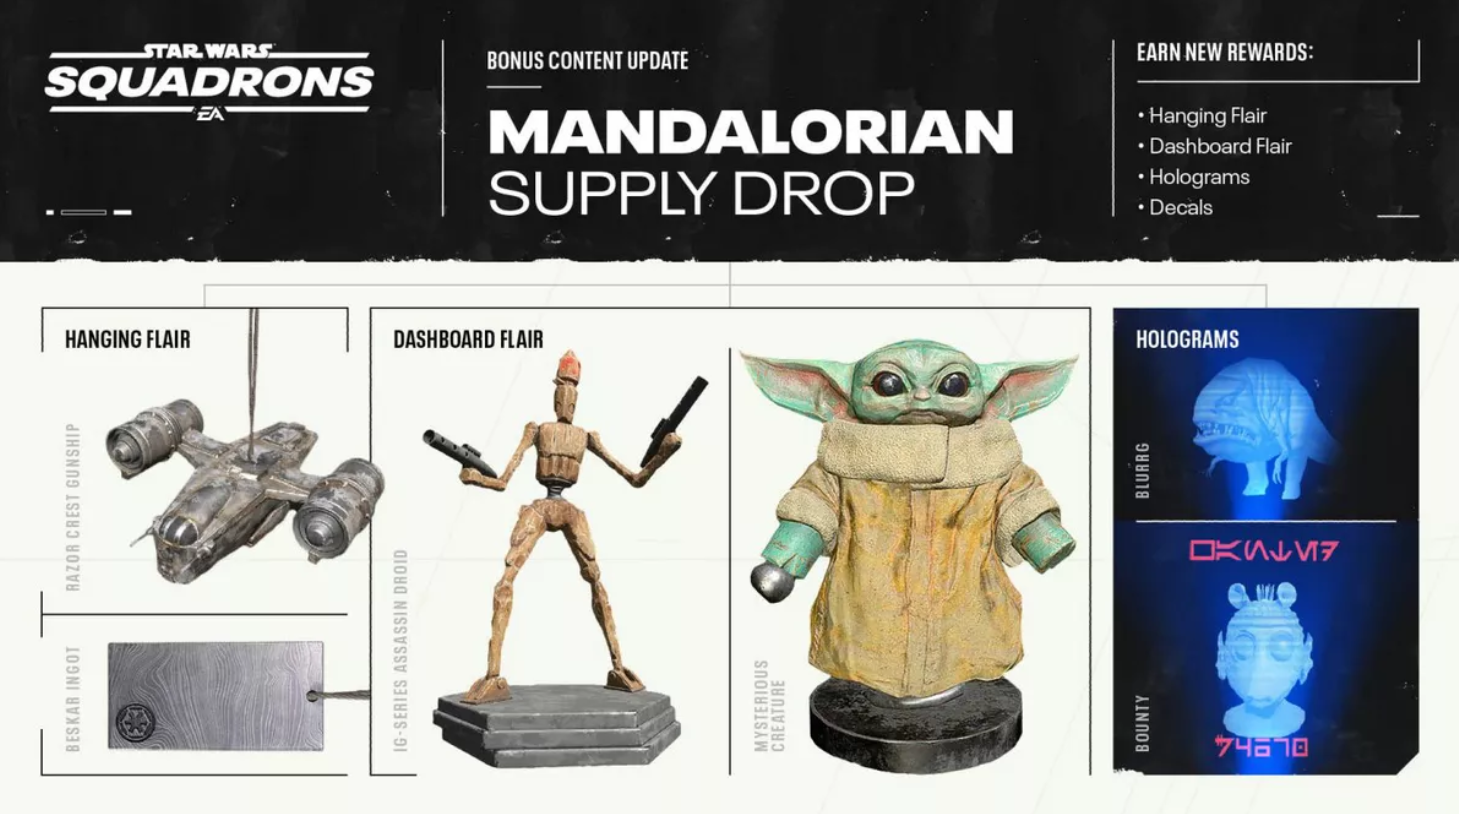 A look at the Mandalorian Supply Drop you need to download.